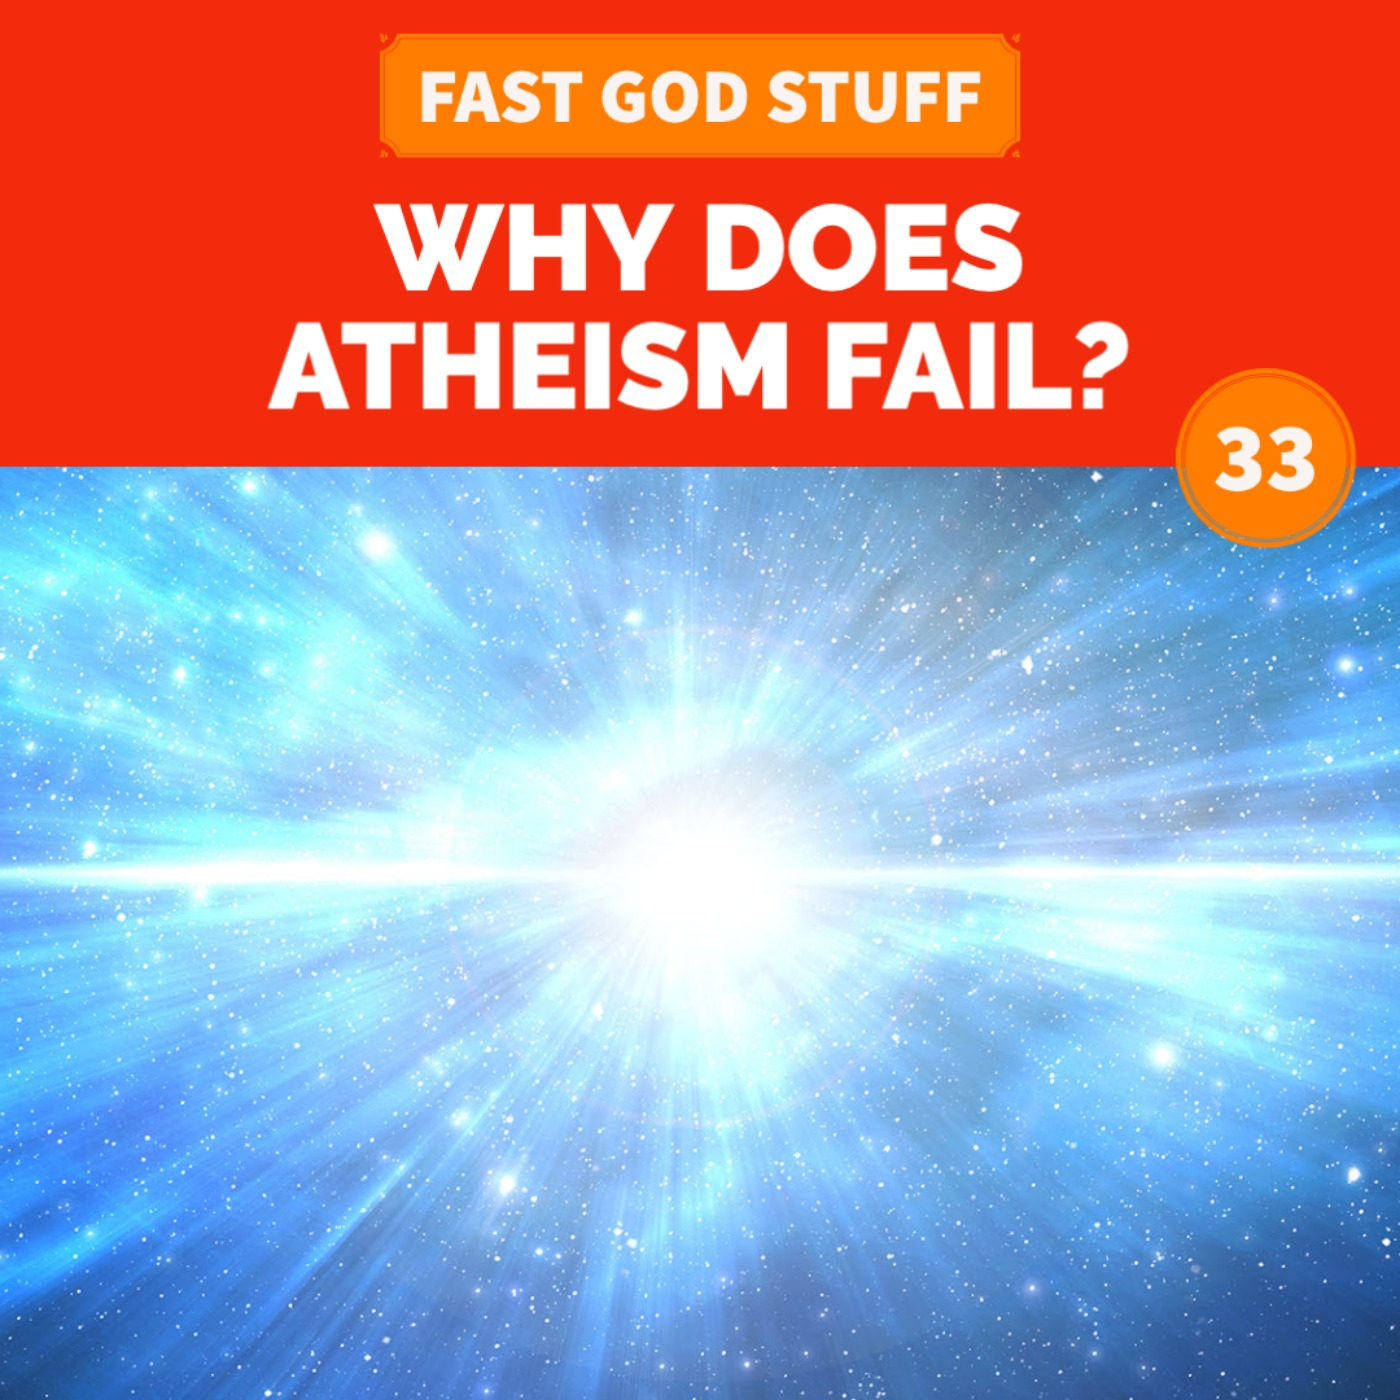 Why Does Atheism Fail?